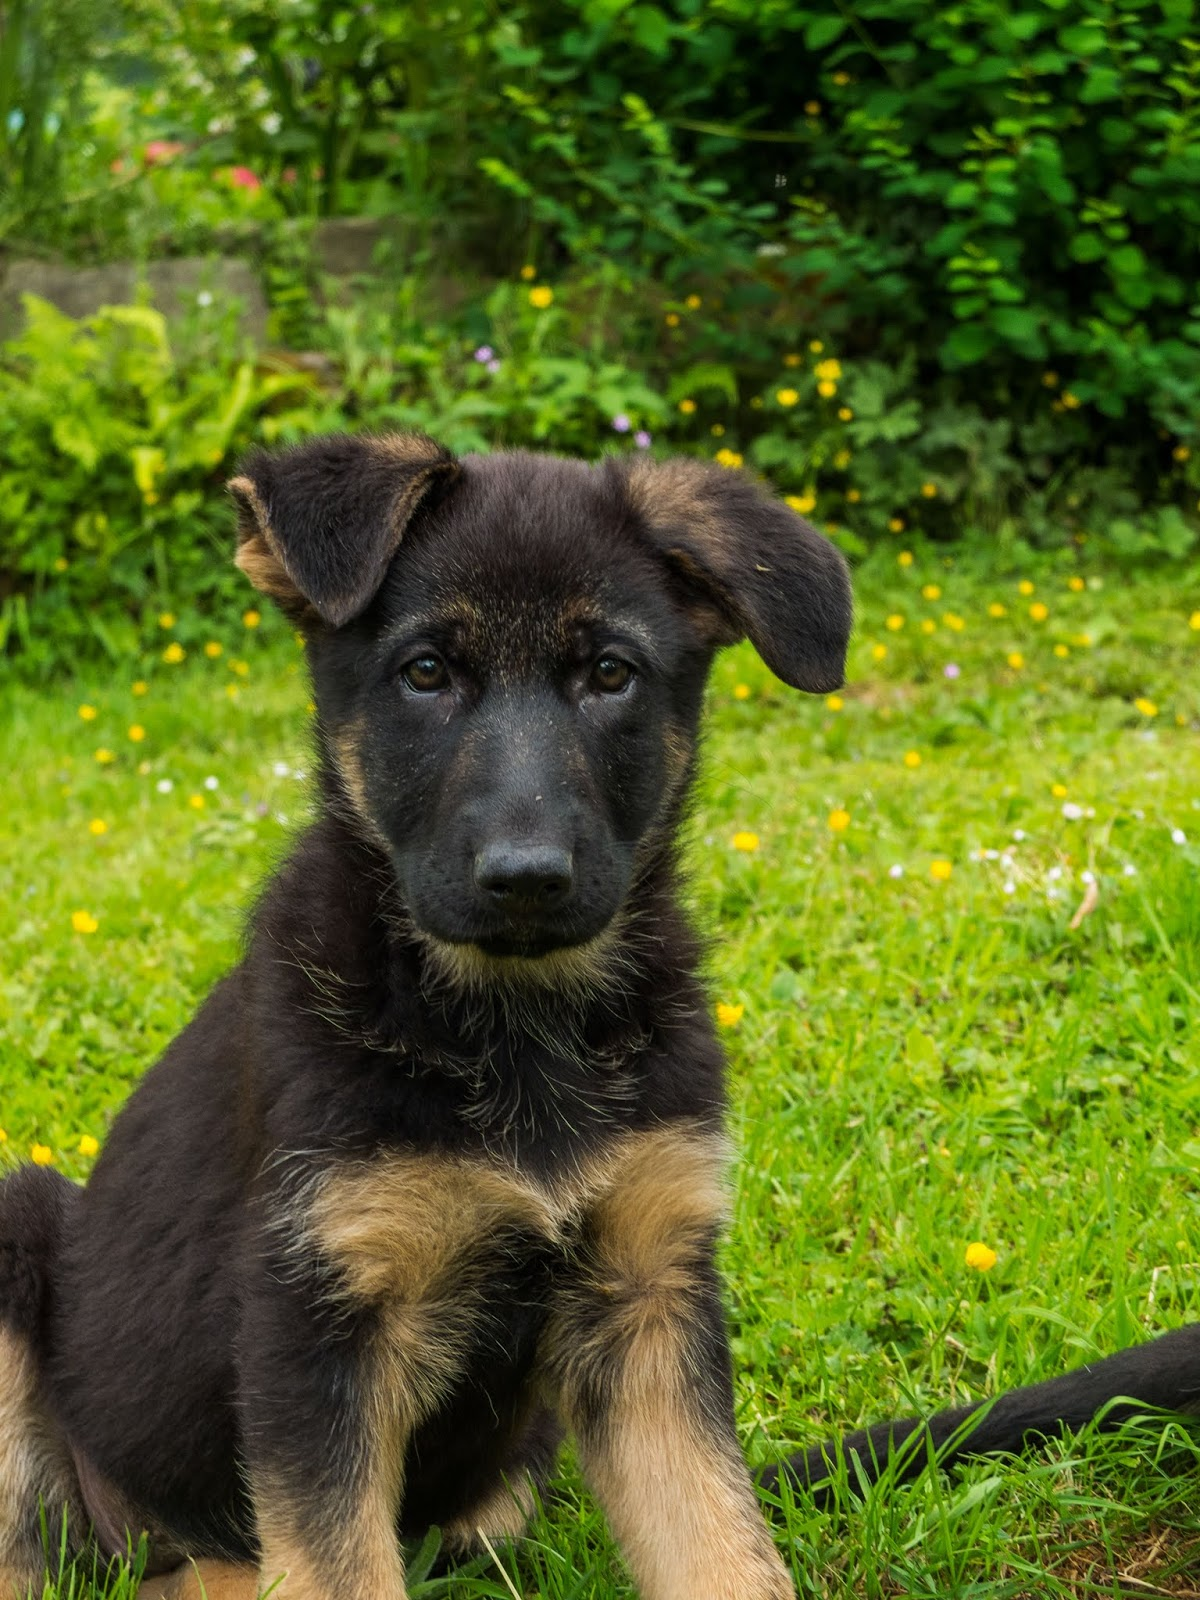 A portrait of a two month old German Shepherd puppy sitting in the grass looking directly at the camera.